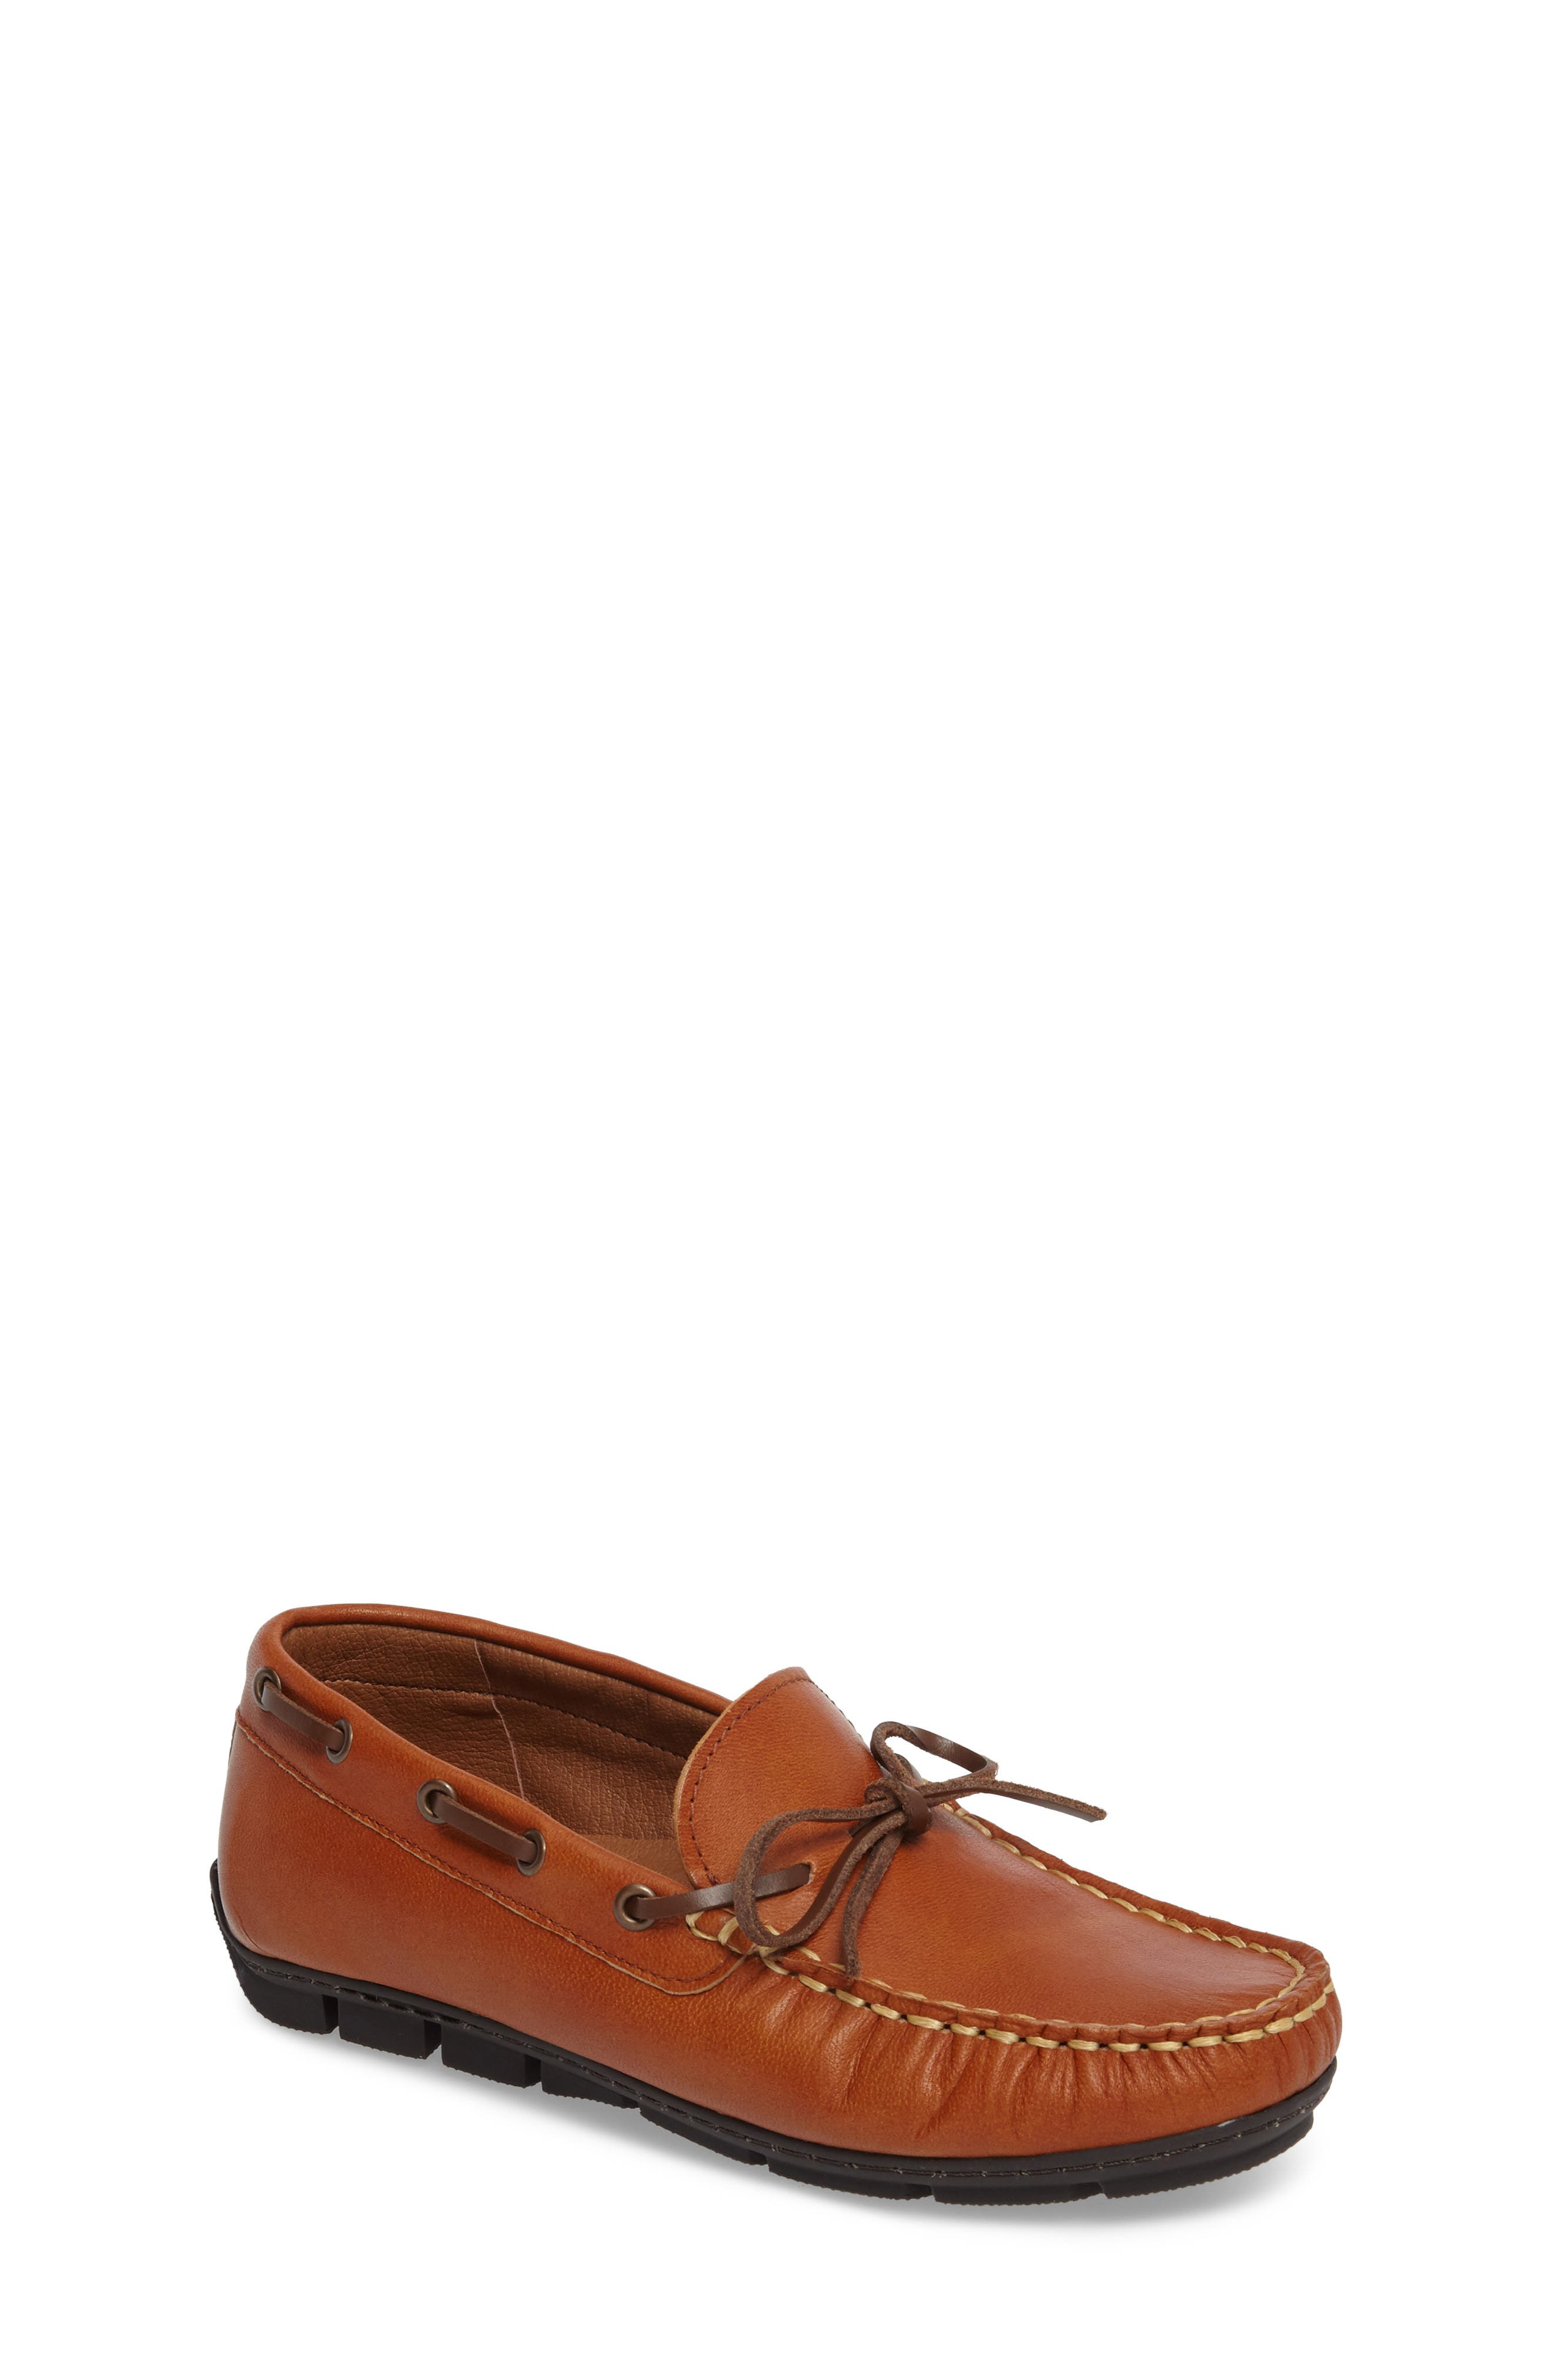 Vince Camuto Doile Loafer (Toddler, Little Kid & Big Kid)